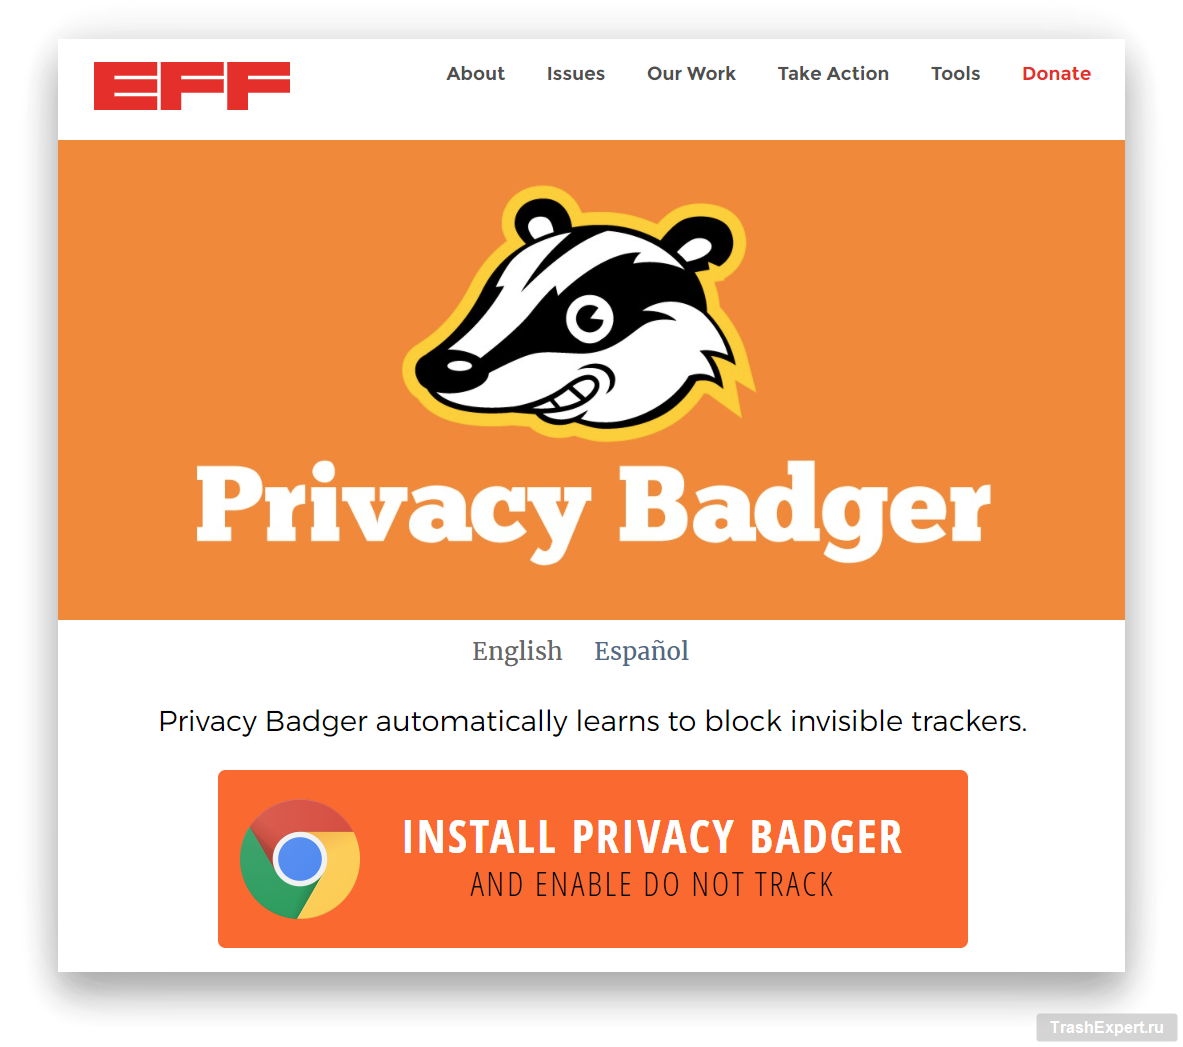 privacybadger.org